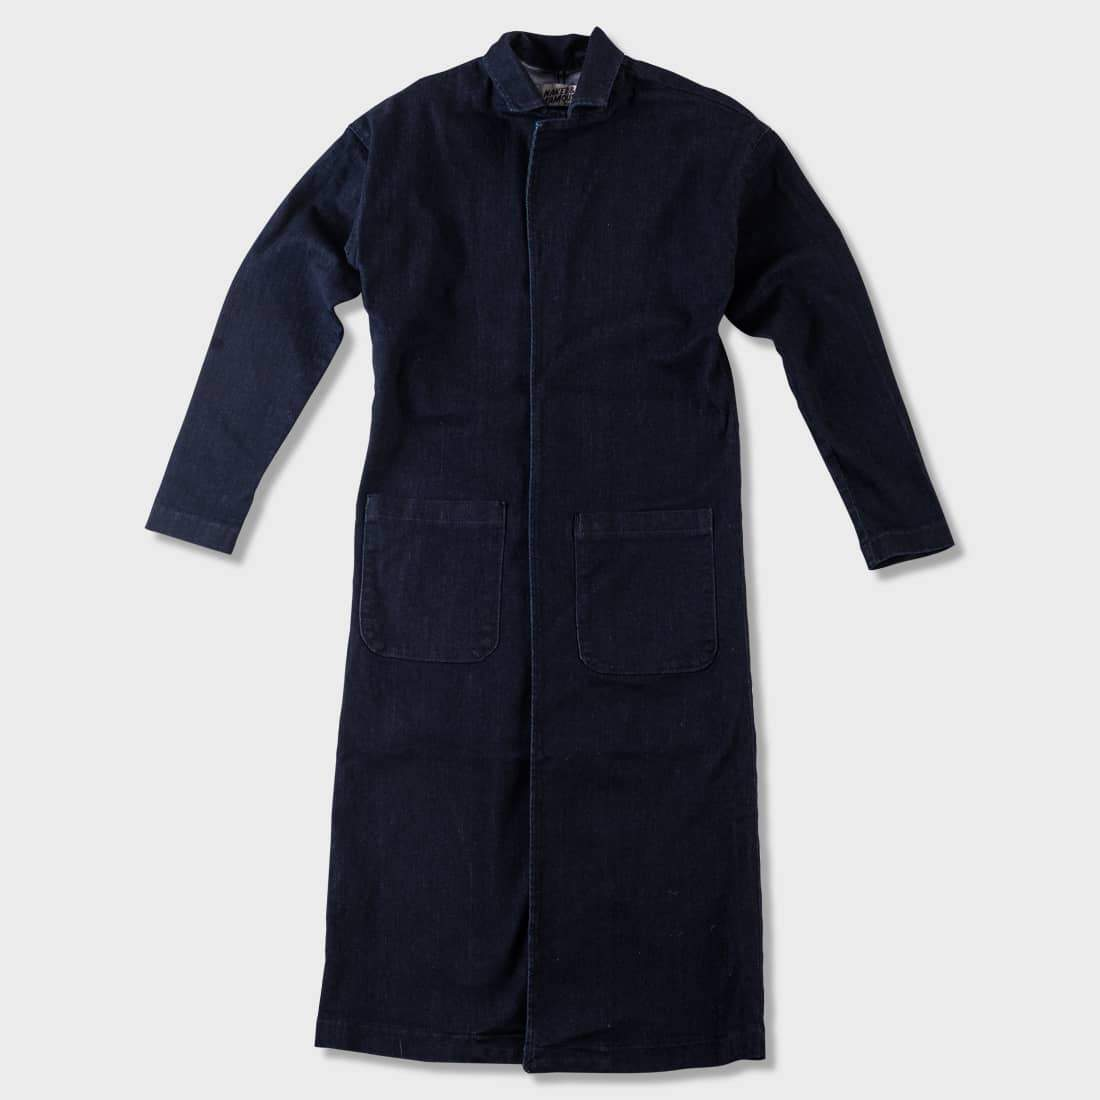 Naked & Famous Duster Coat Indigo Stretch Denim